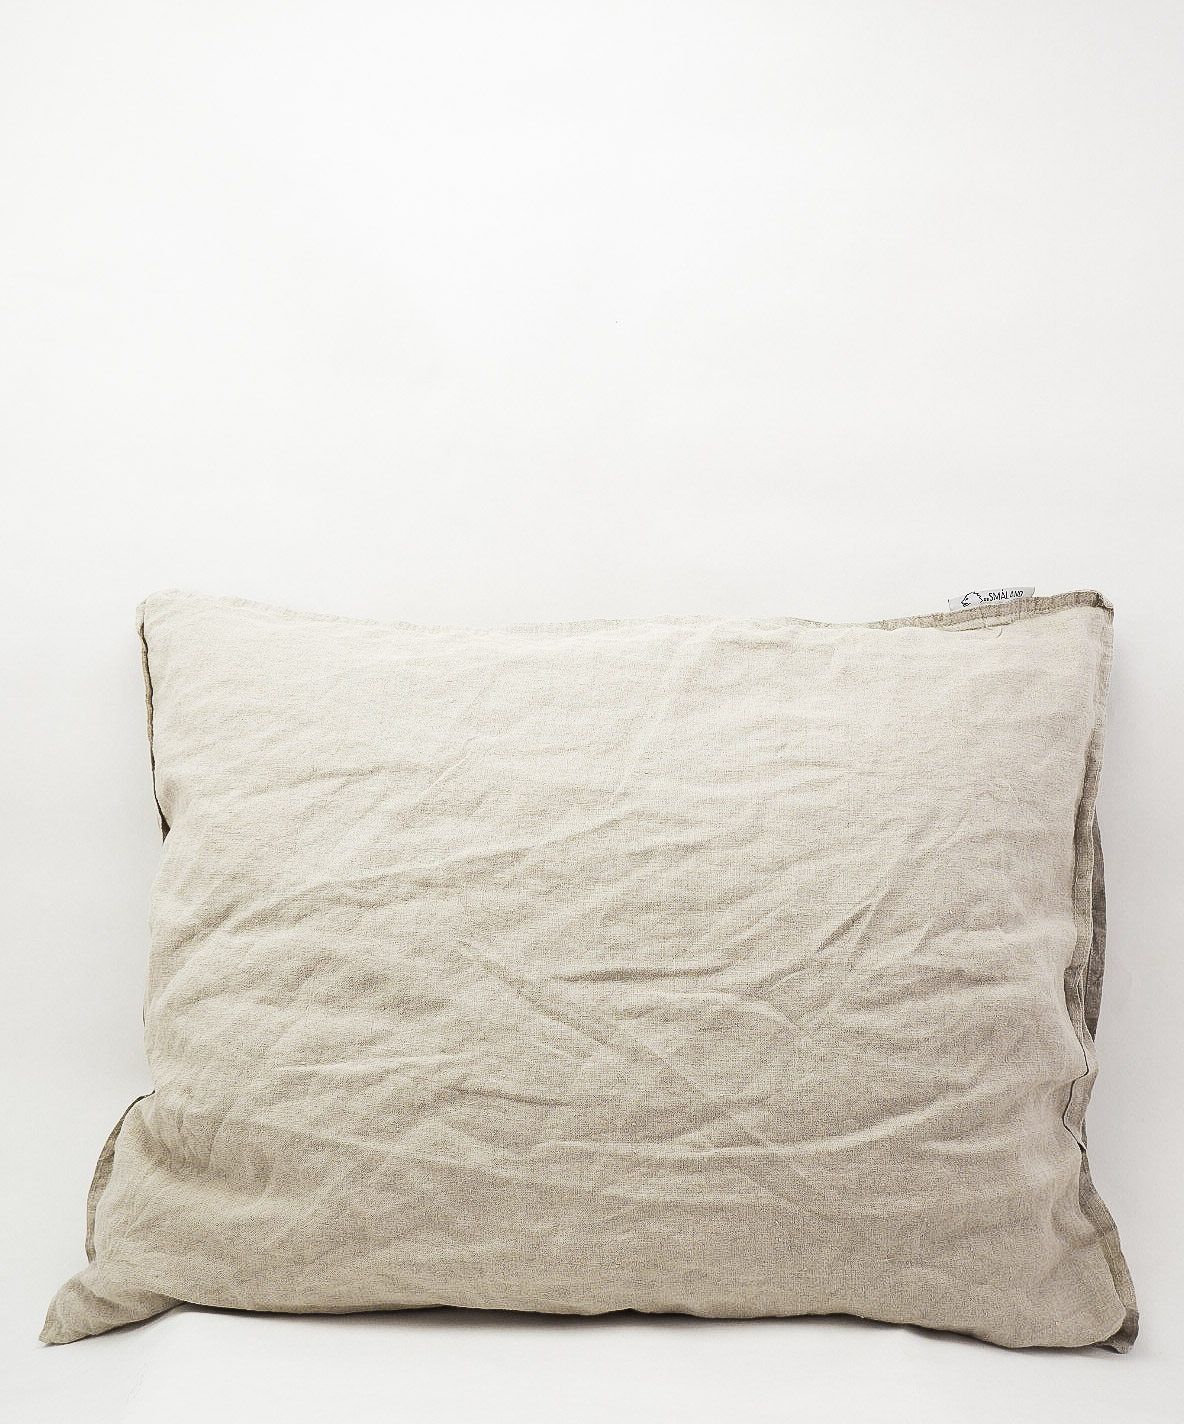 Pillowcase Linen Natural